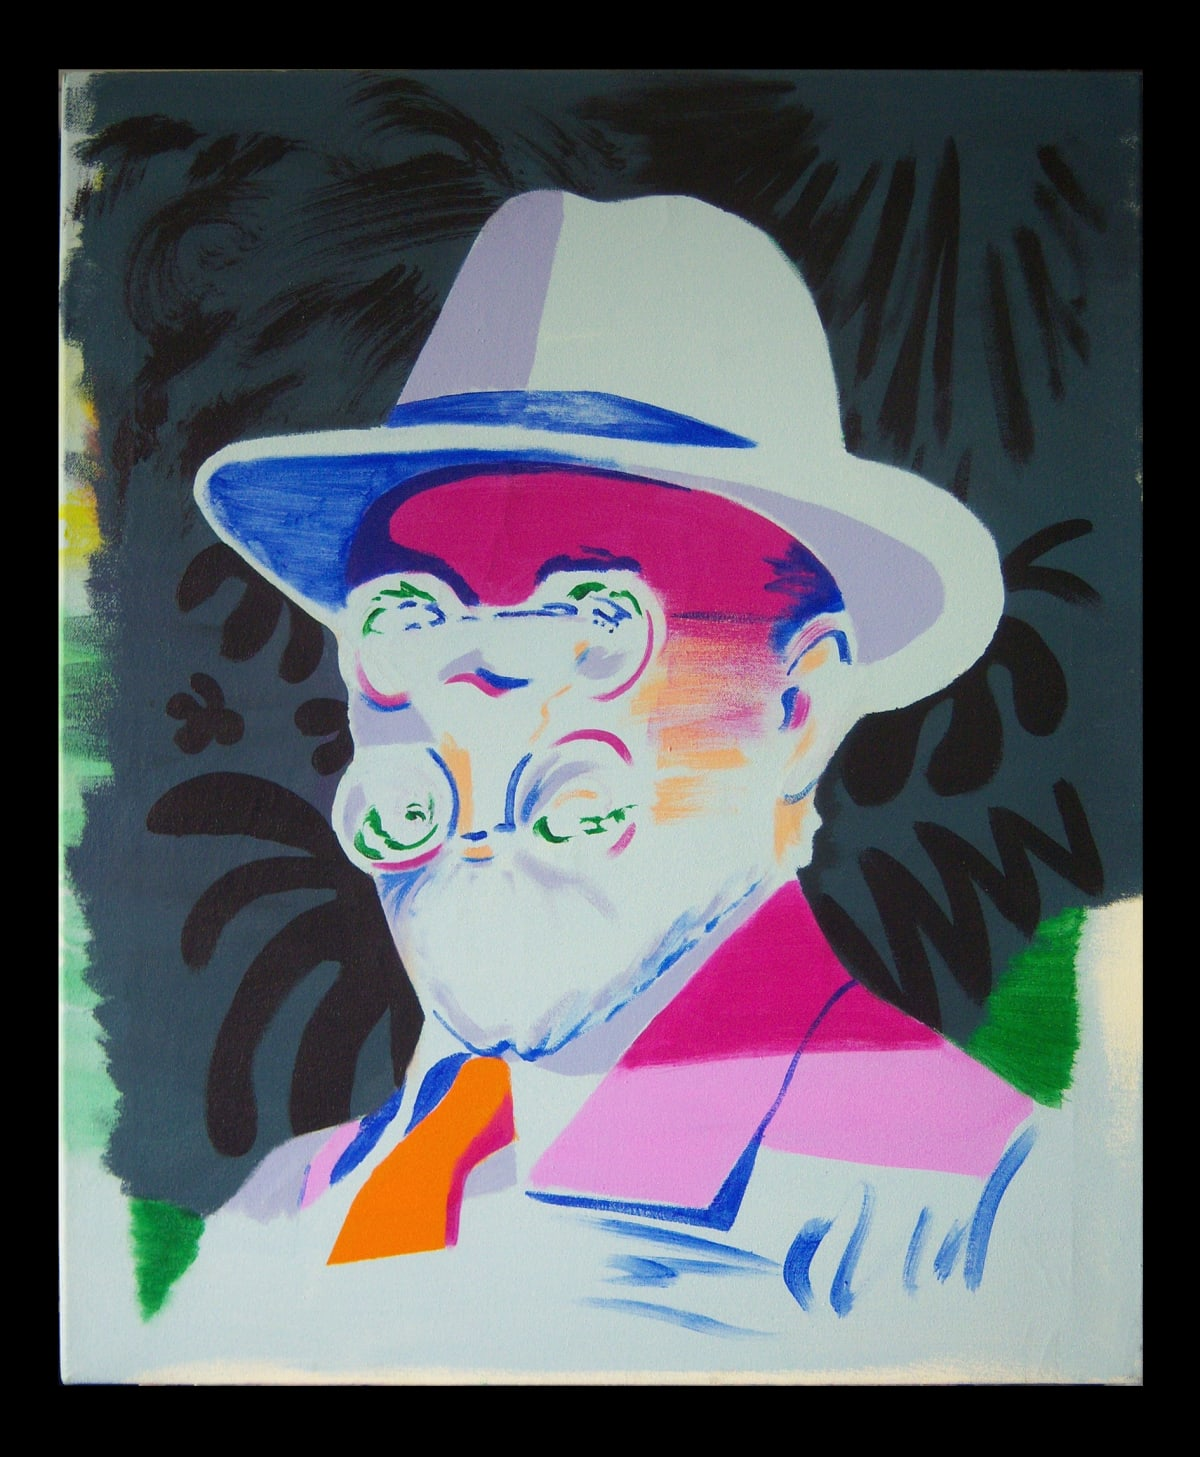 Darren Coffield Matisse, 2016 Acrylic on canvas 81.9 x 72.1 cm 32 1/4 x 28 3/8 in